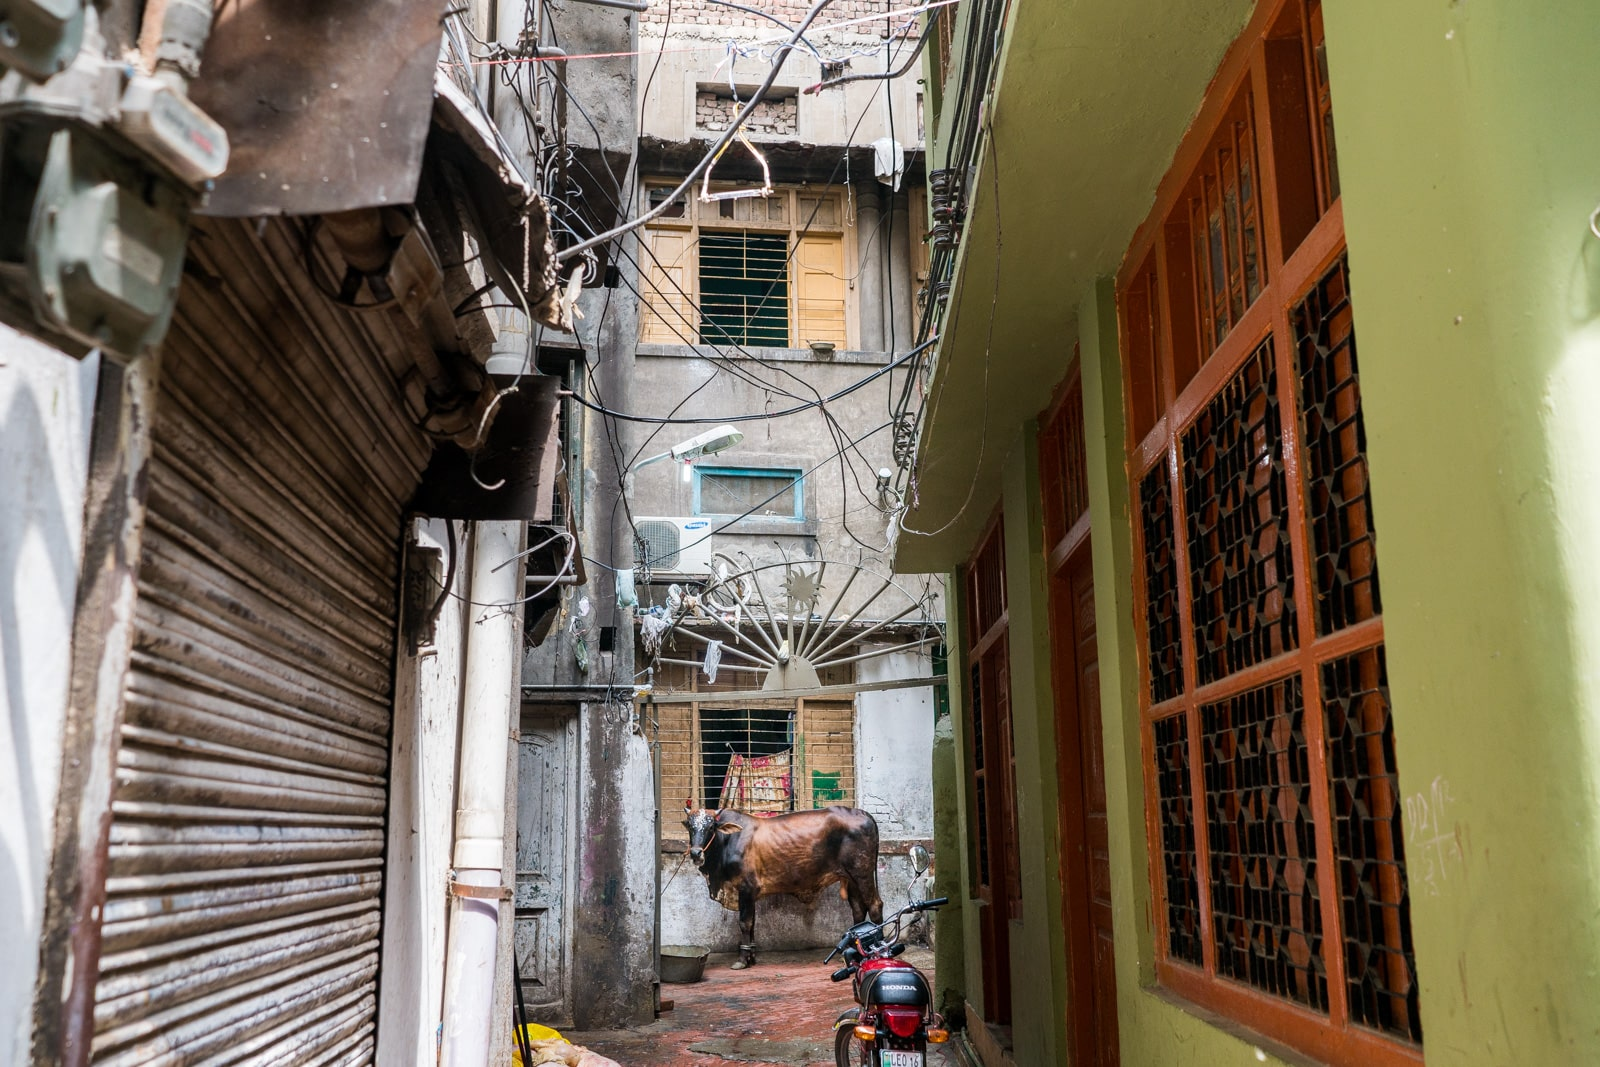 Celebrating Eid al-Adha in Lahore, Pakistan - A cow standing in an alley in Lahore - Lost With Purpose travel blog